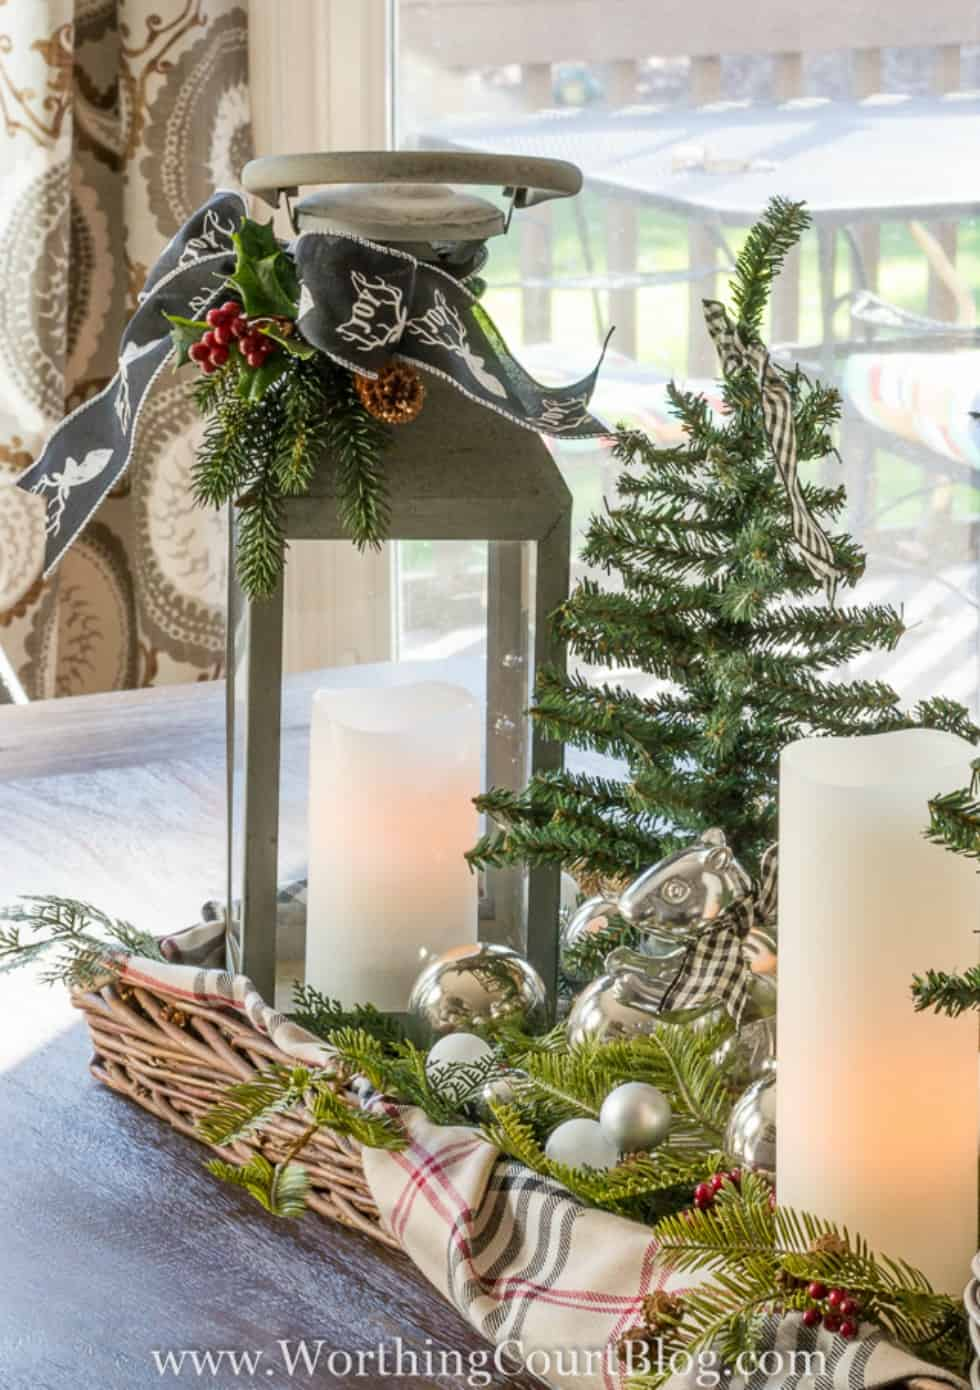 Easy and fast Christmas centerpiece with a silver squirrel and candles, beside a small Christmas tree.